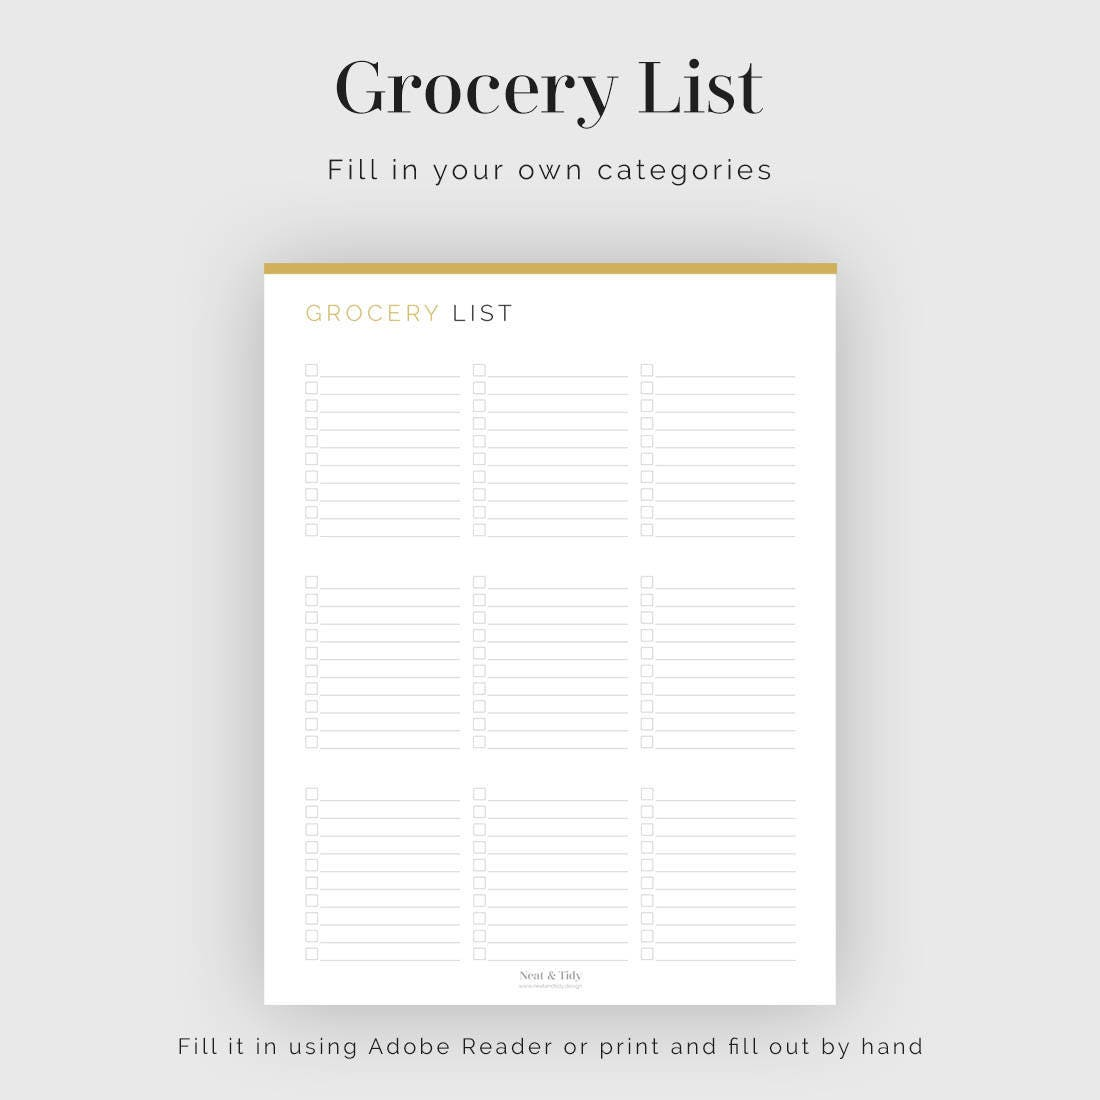 grocery list categories